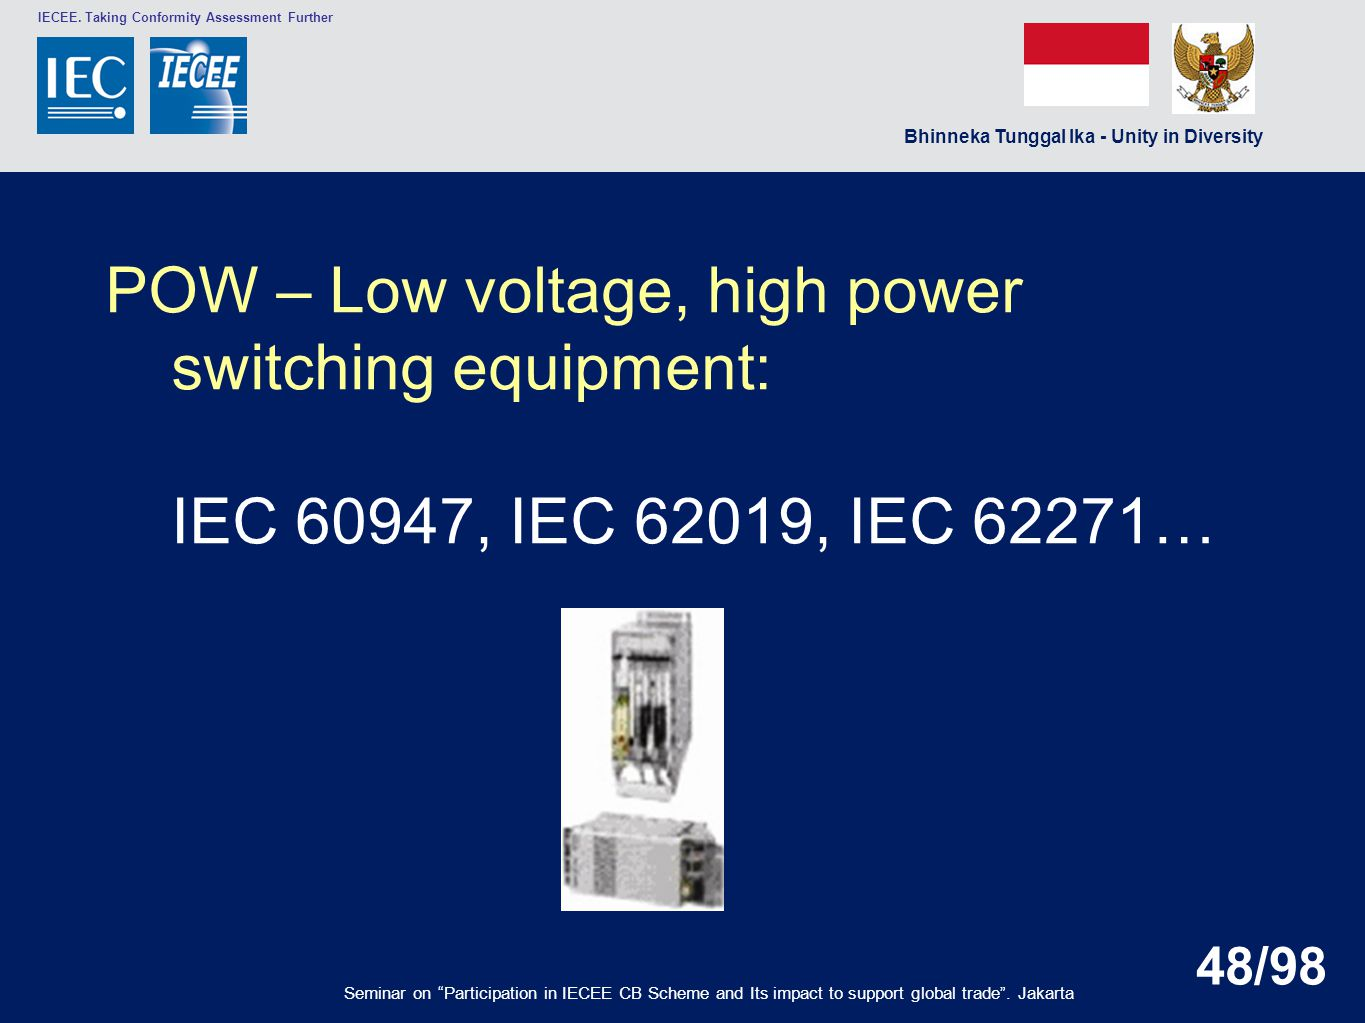 POW – Low voltage, high power switching equipment: IEC 60947, IEC 62019, IEC 62271…